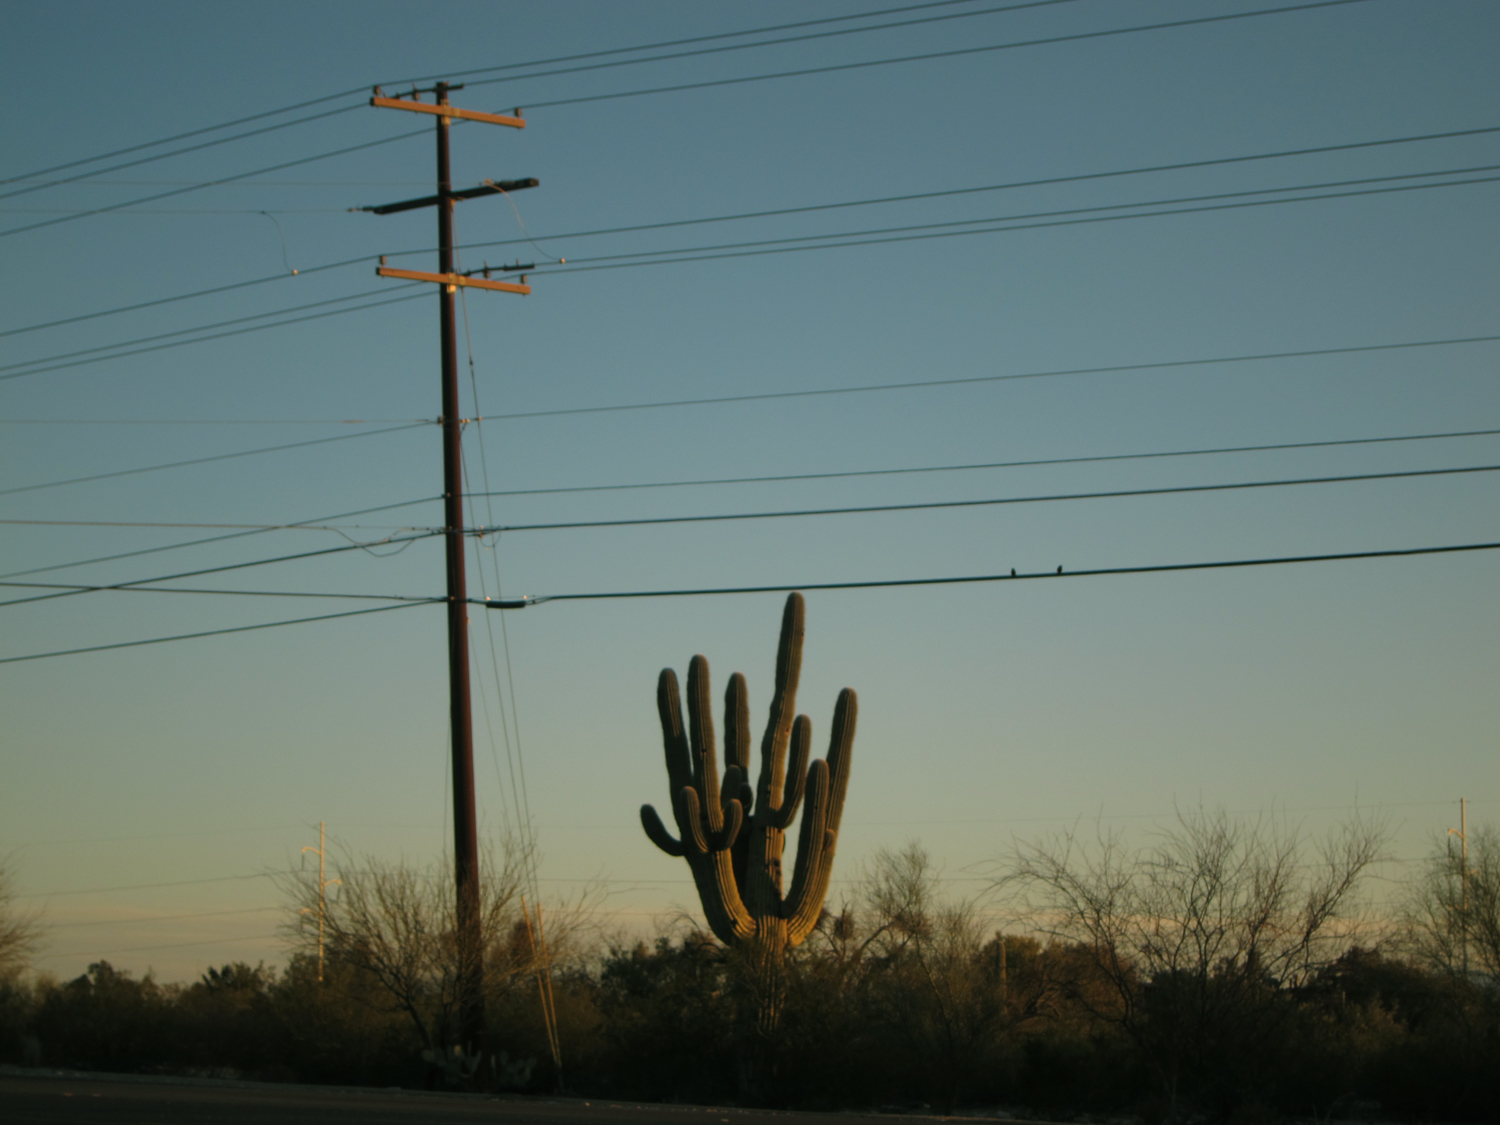 The Tucson landscape—cactus in the setting sun.